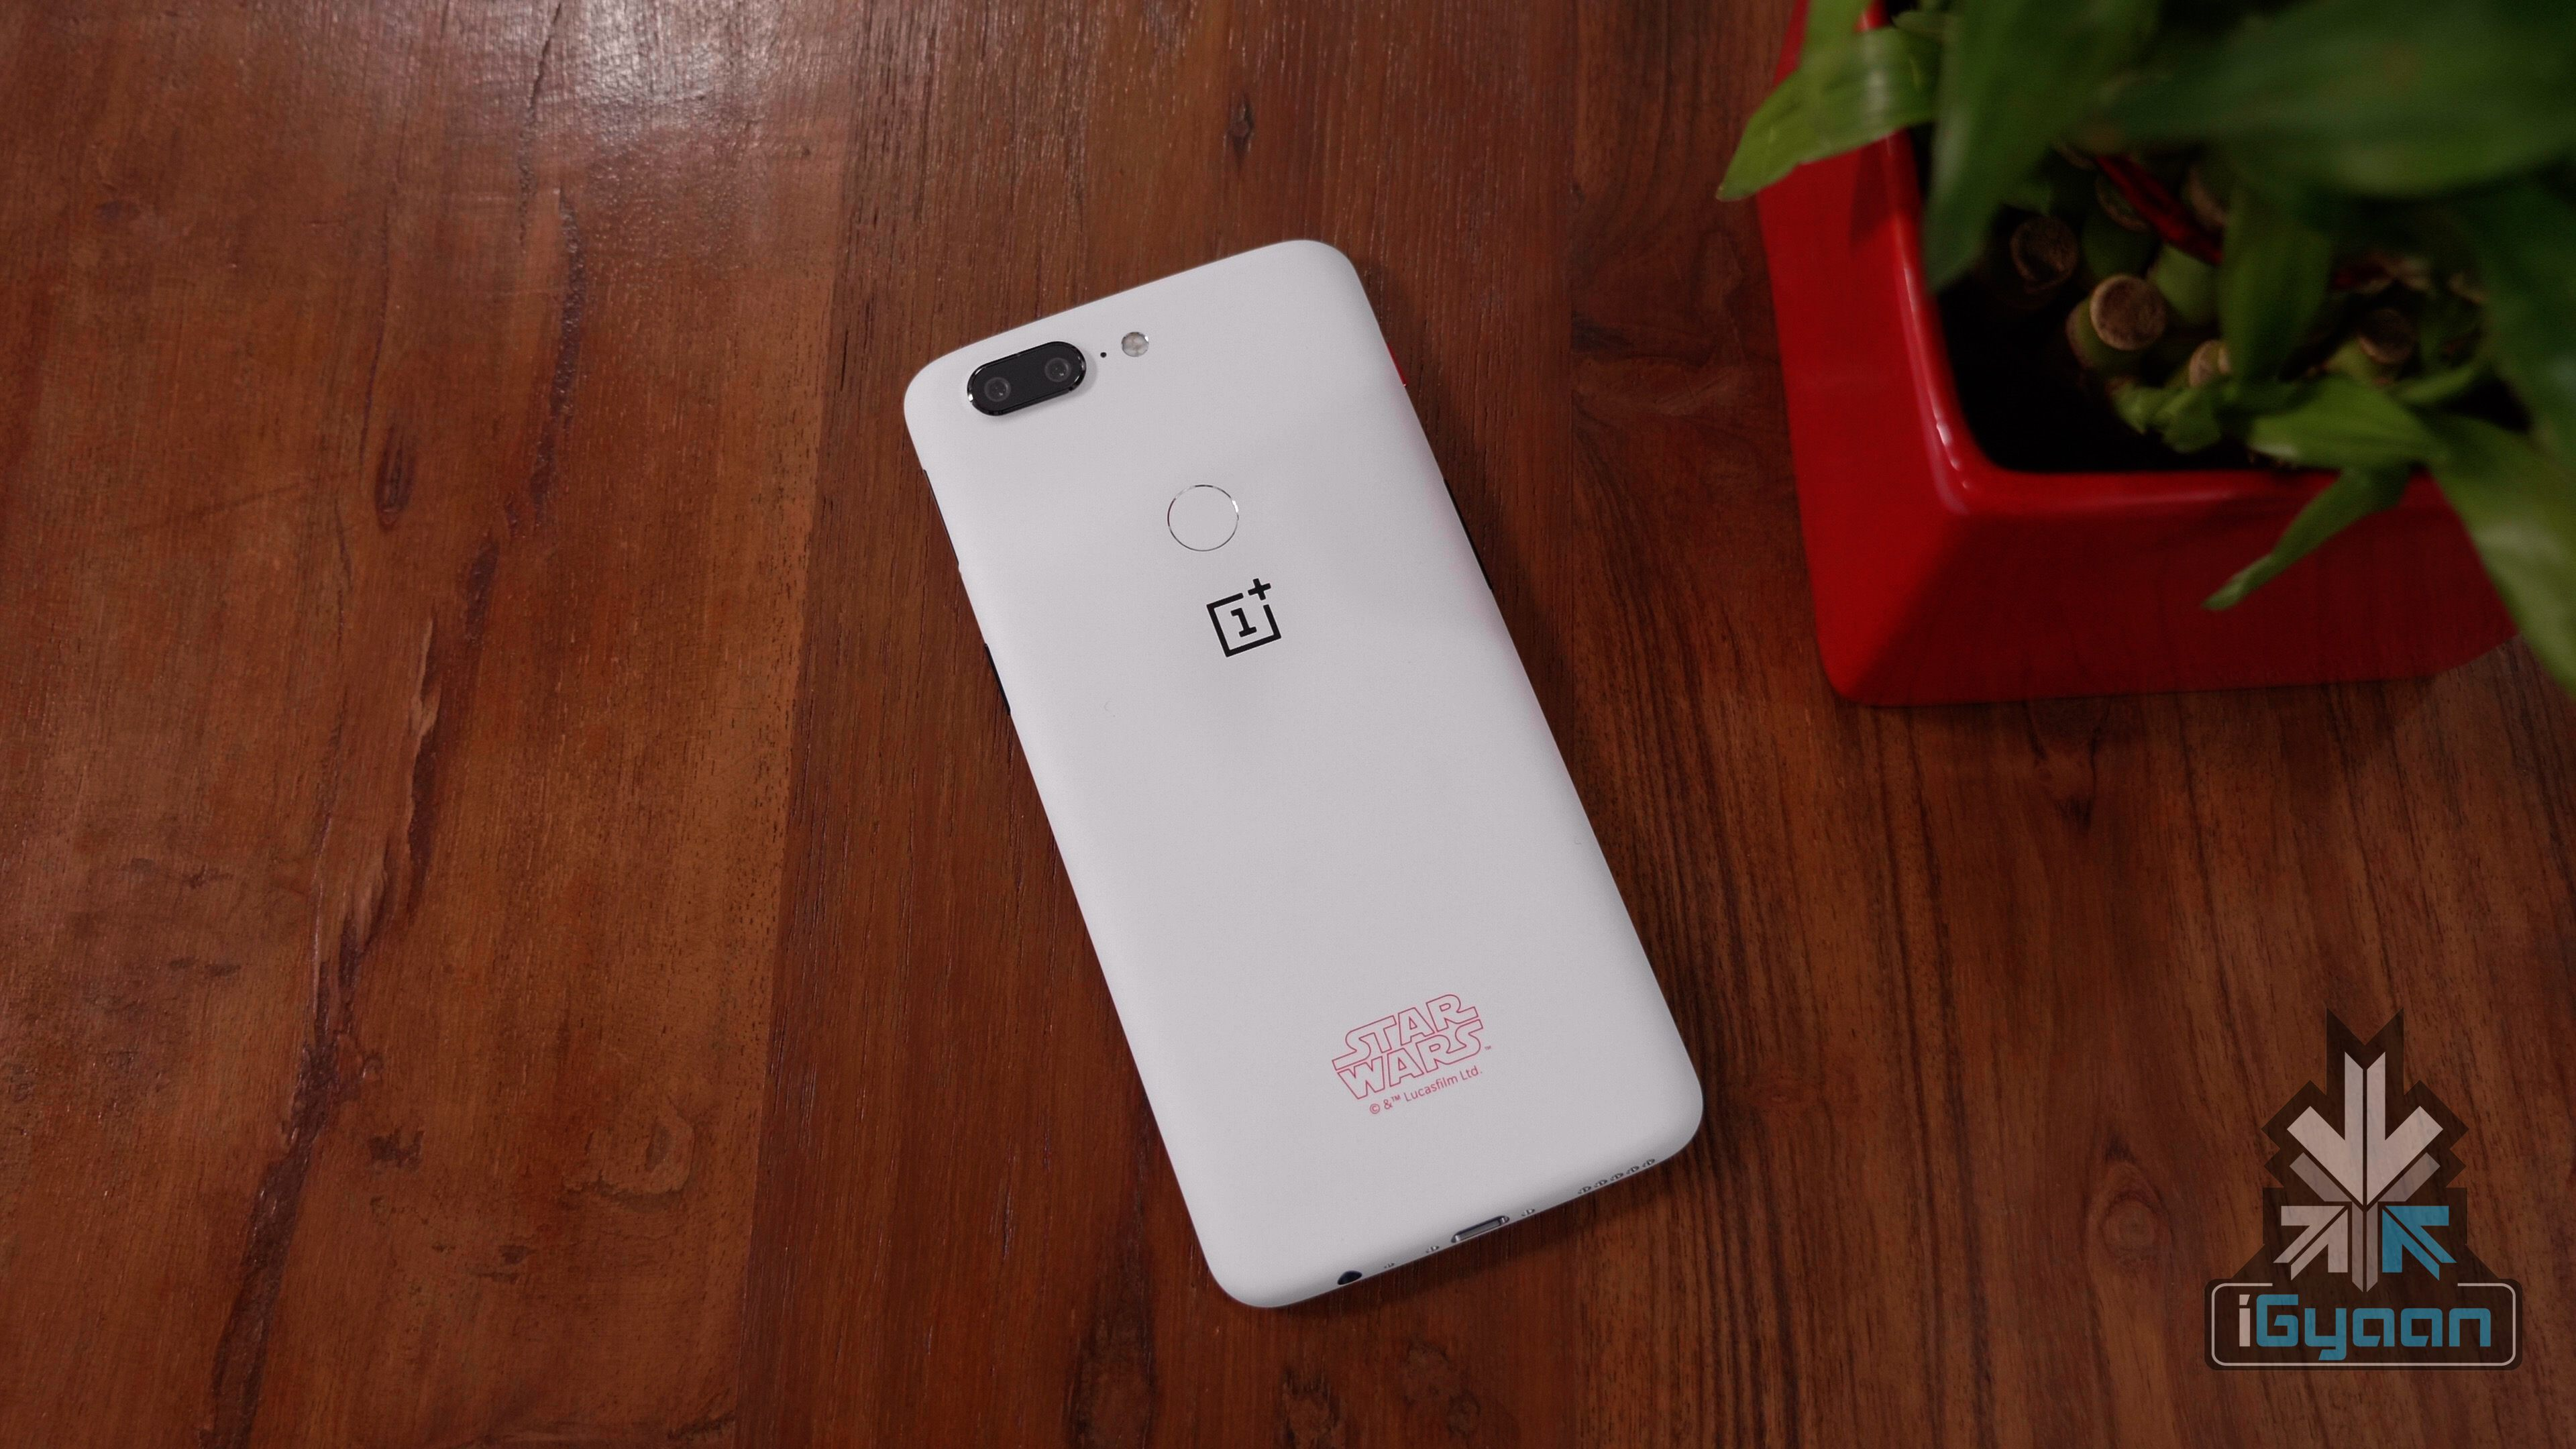 OnePlus teases waterproofing for the OnePlus 6